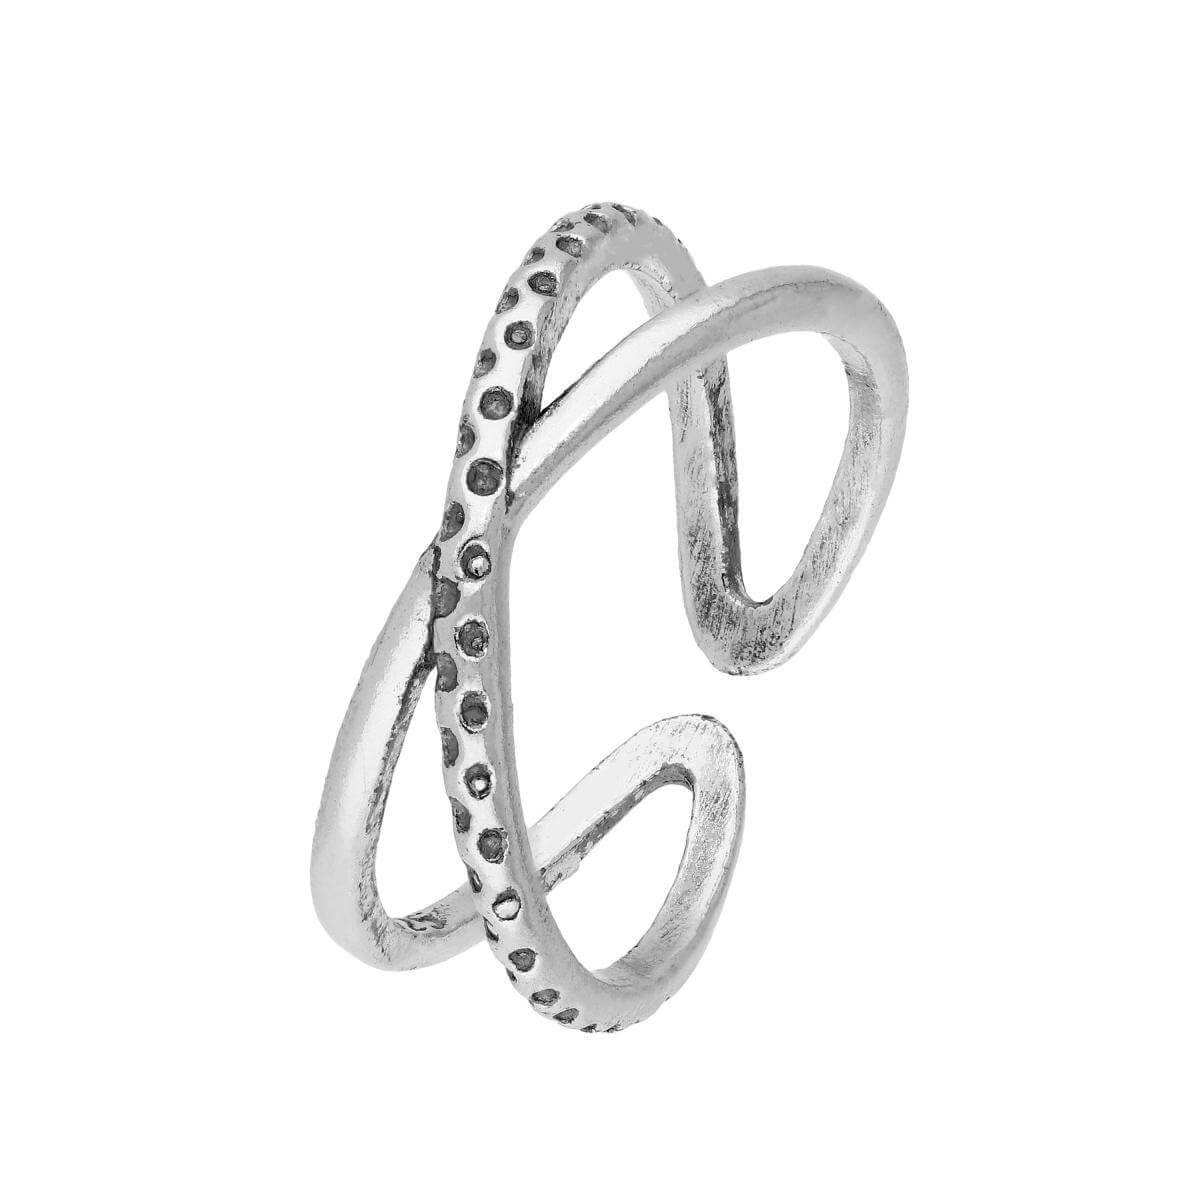 Sterling Silver Criss Cross Patterned Toe Ring